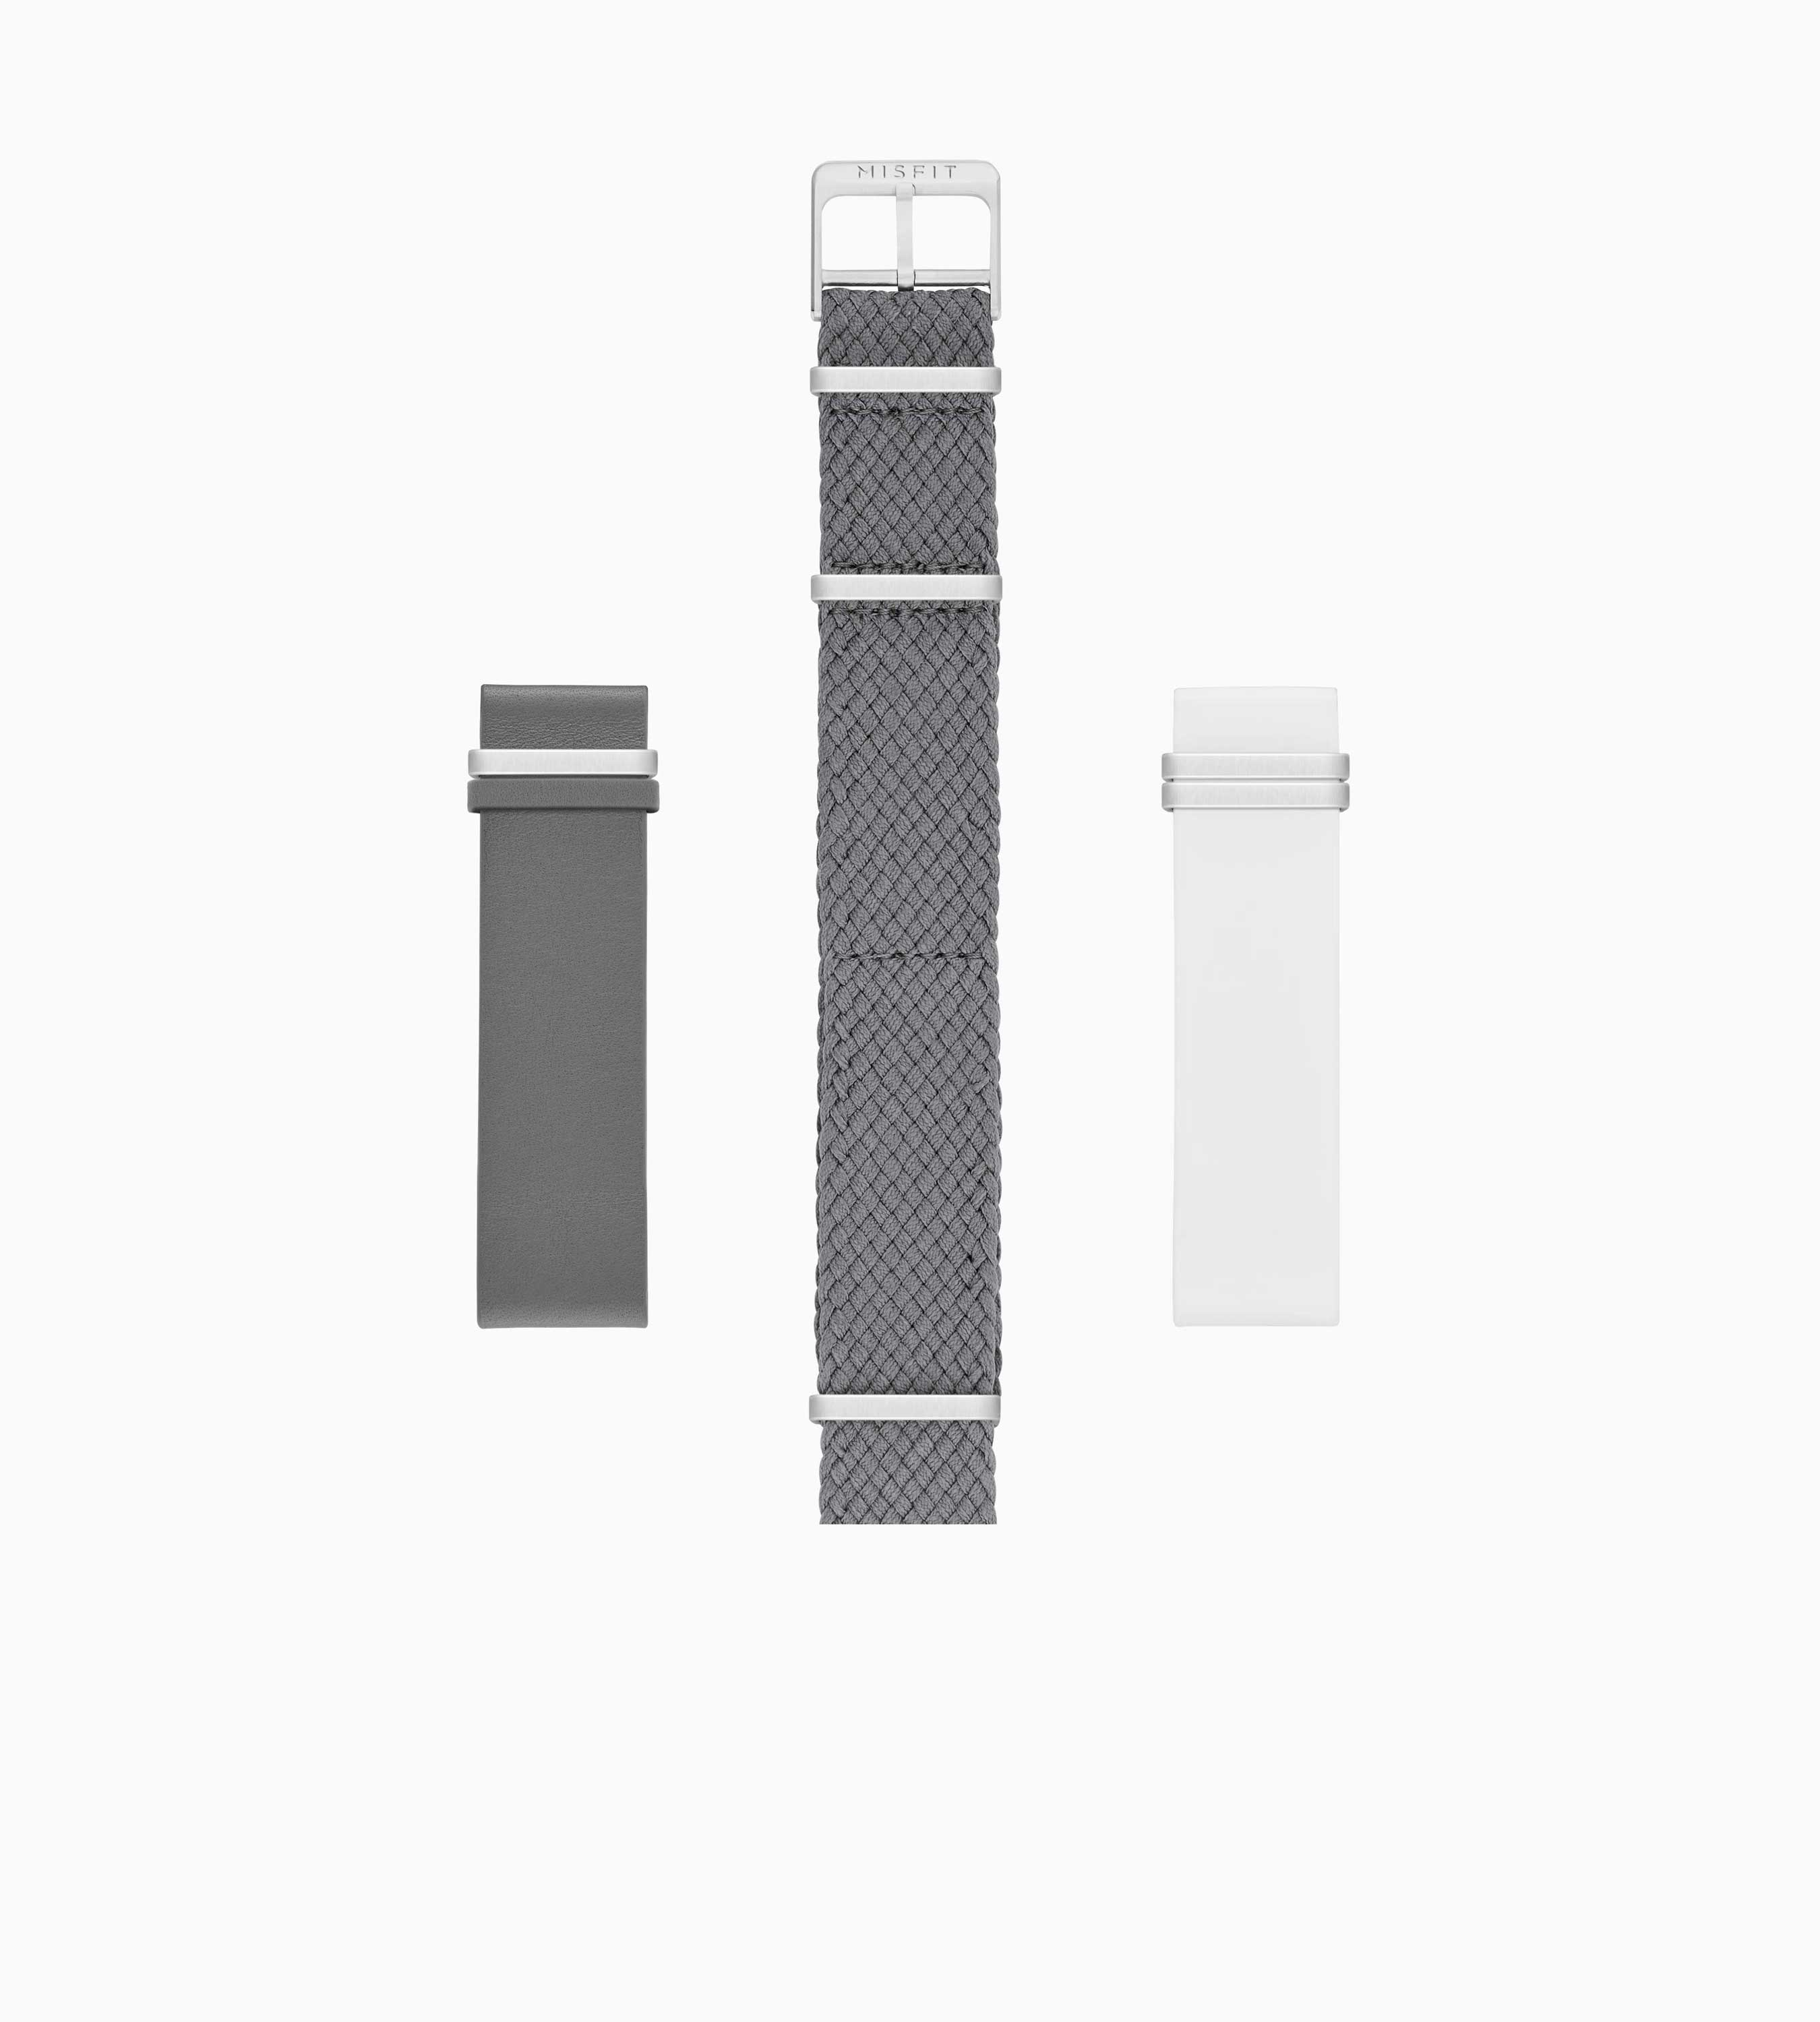 Misfit Smartwatch Minimalist 3-Pack Accessory